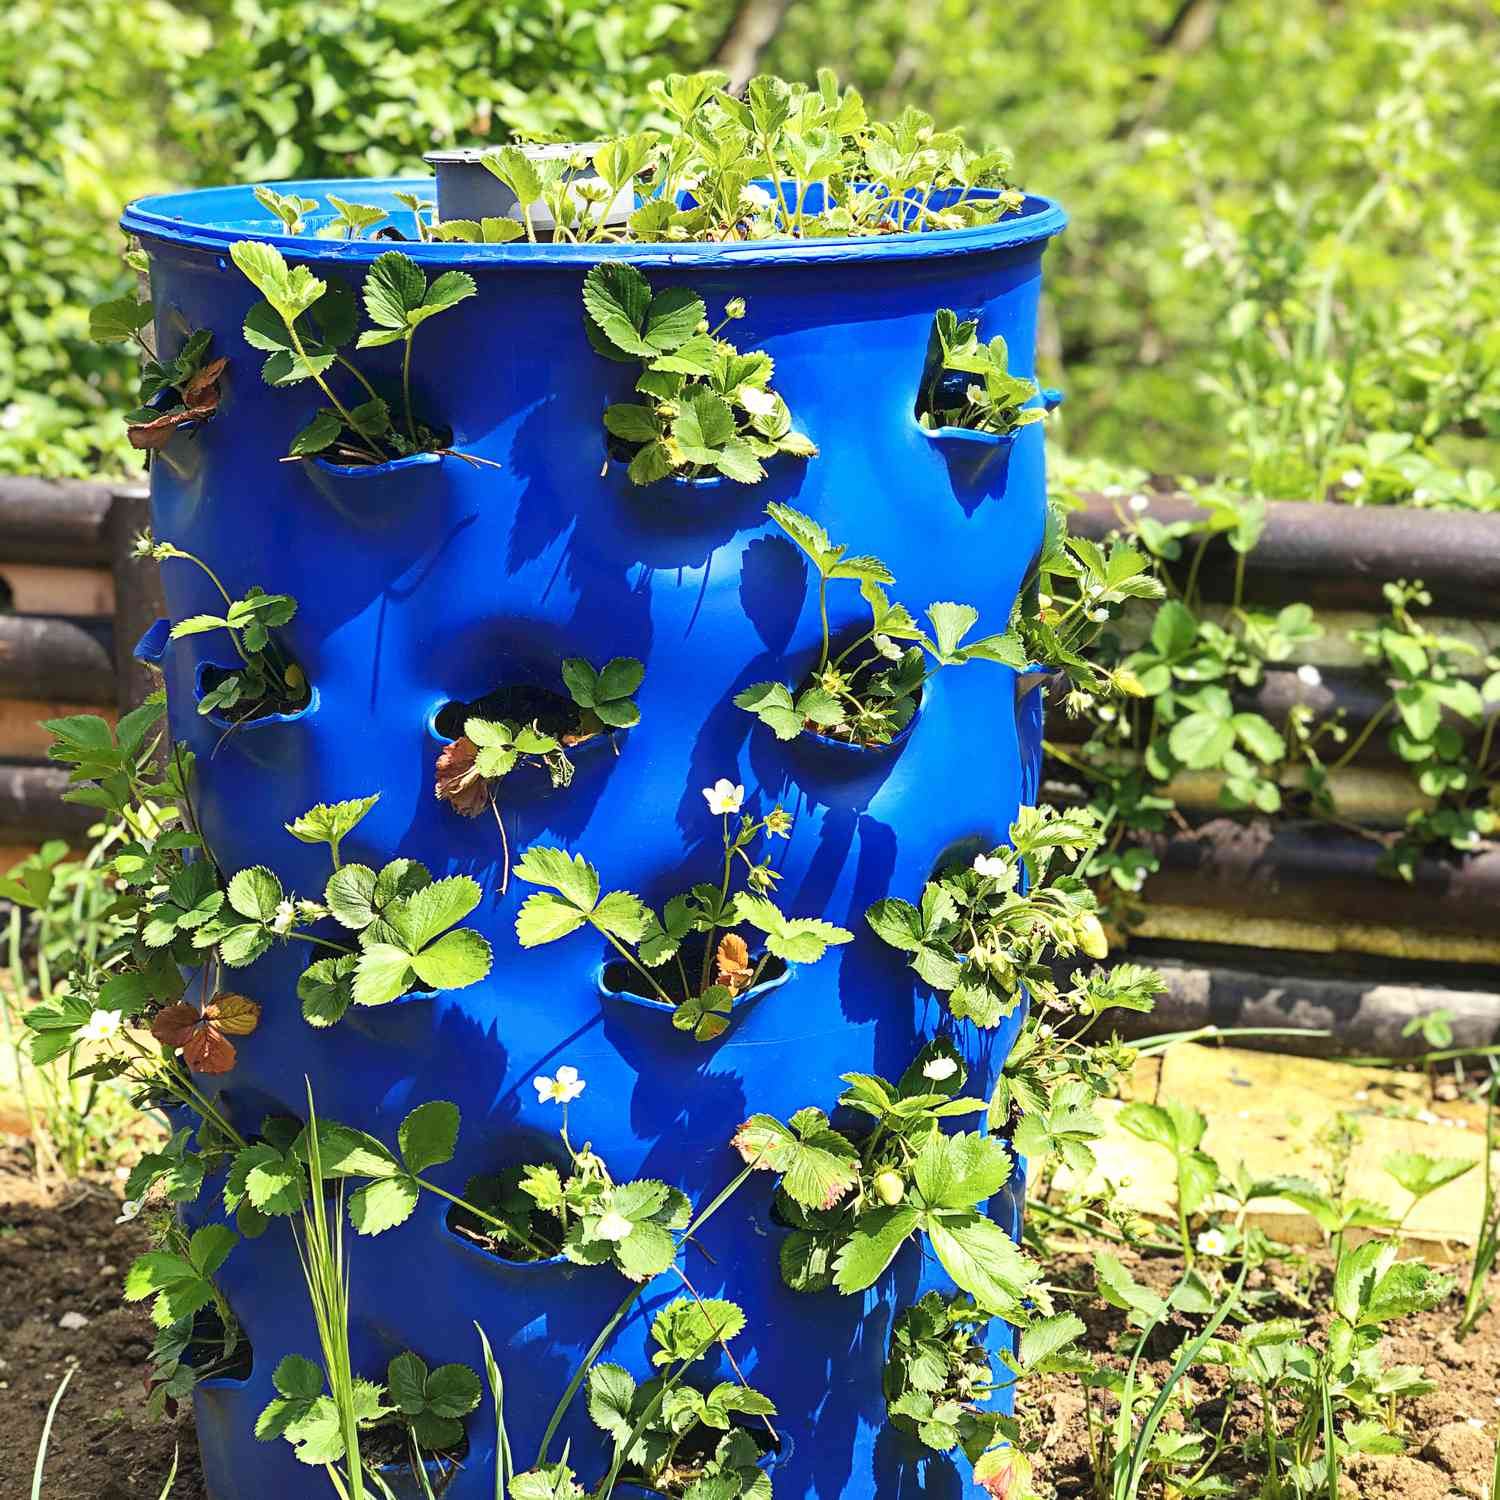 Strawberries growing in an upcycled blue barrel.